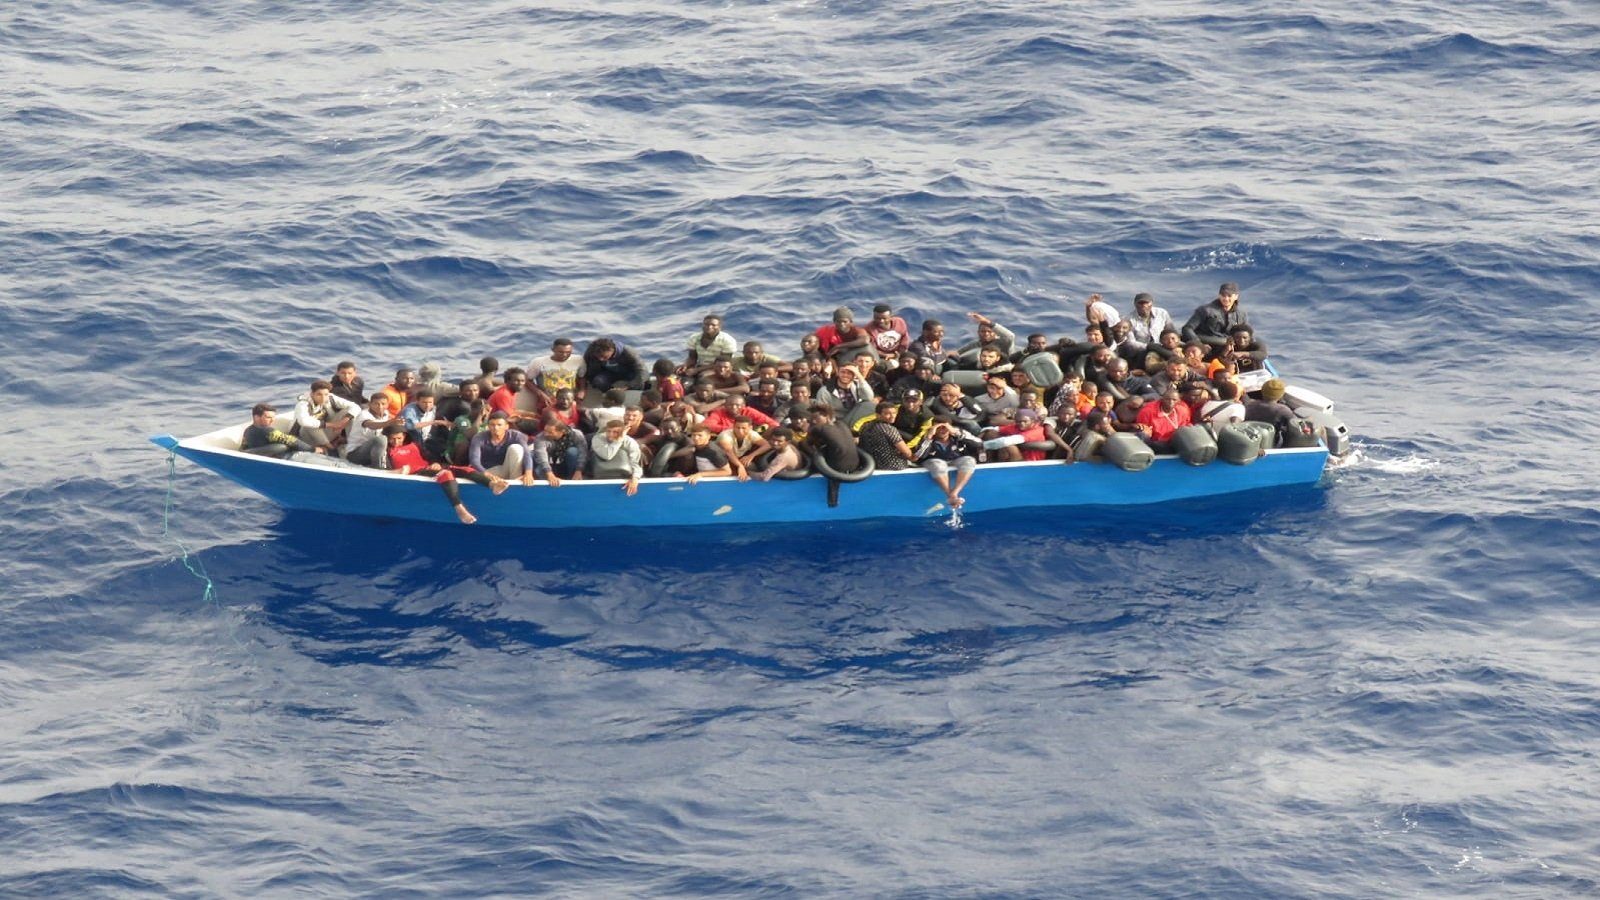 Irregular migrants off Libya are seen in the Mediterranean Sea, July 18, 2021 (Courtesy of the Turkish Defense Ministry)